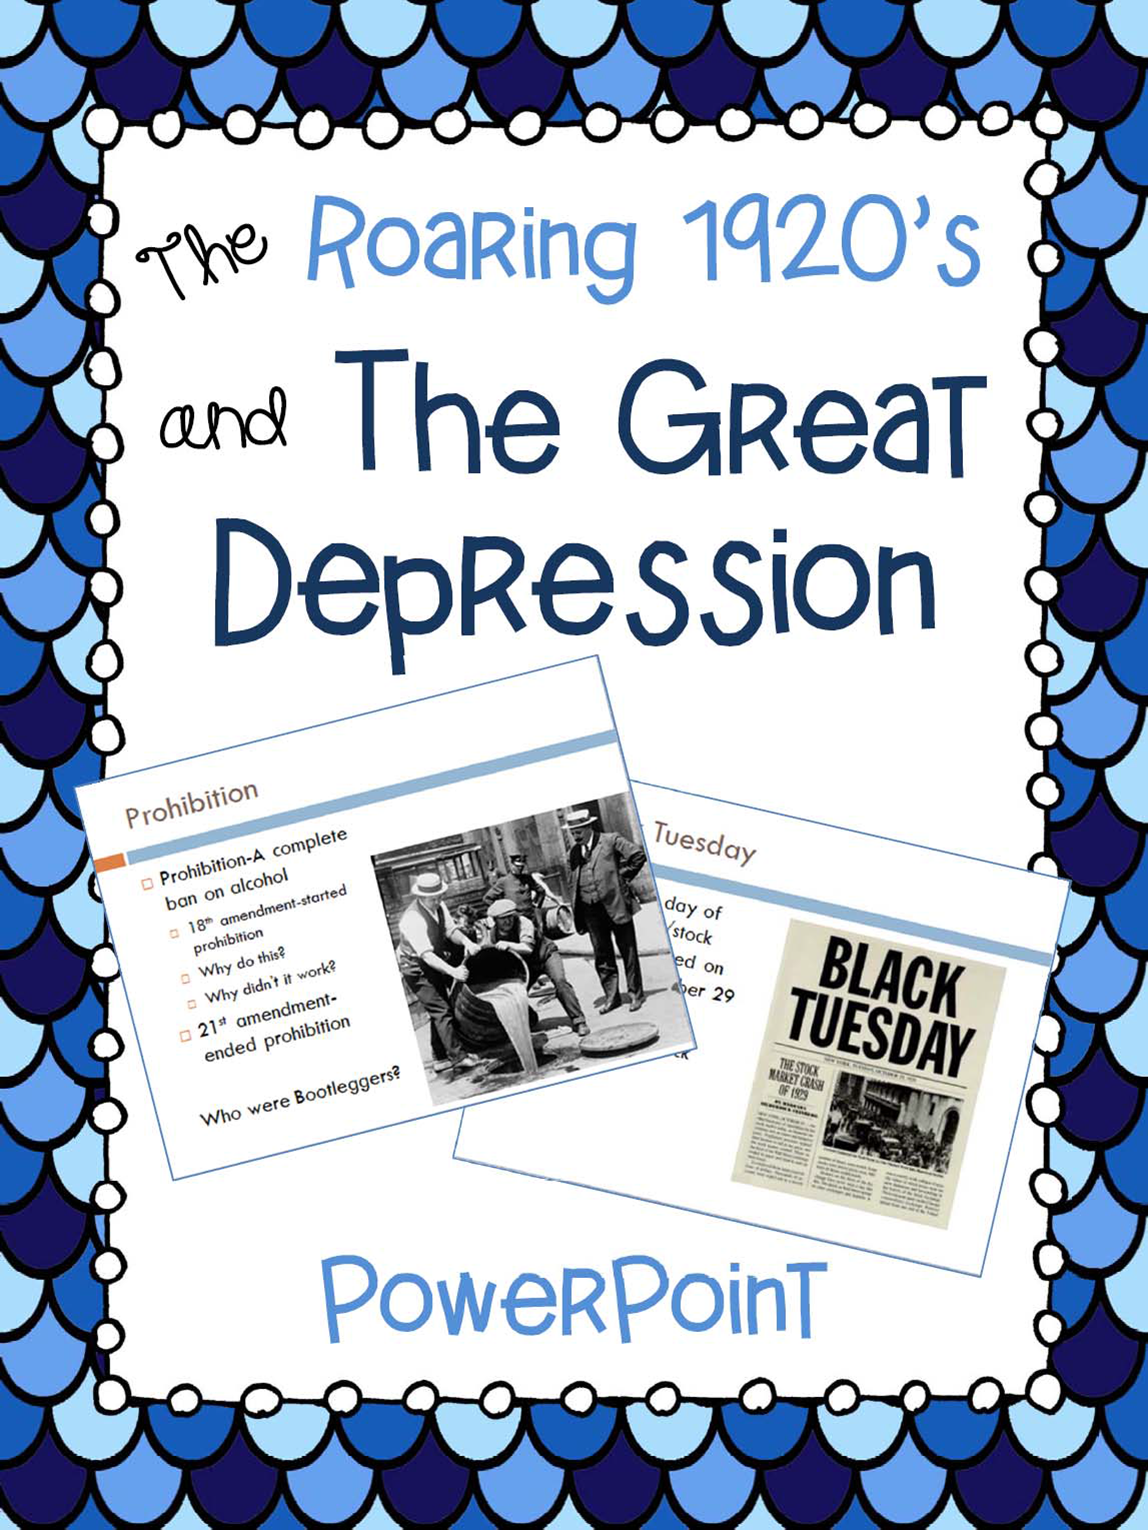 the roaring 1920 s and the great depression powerpoint presentation